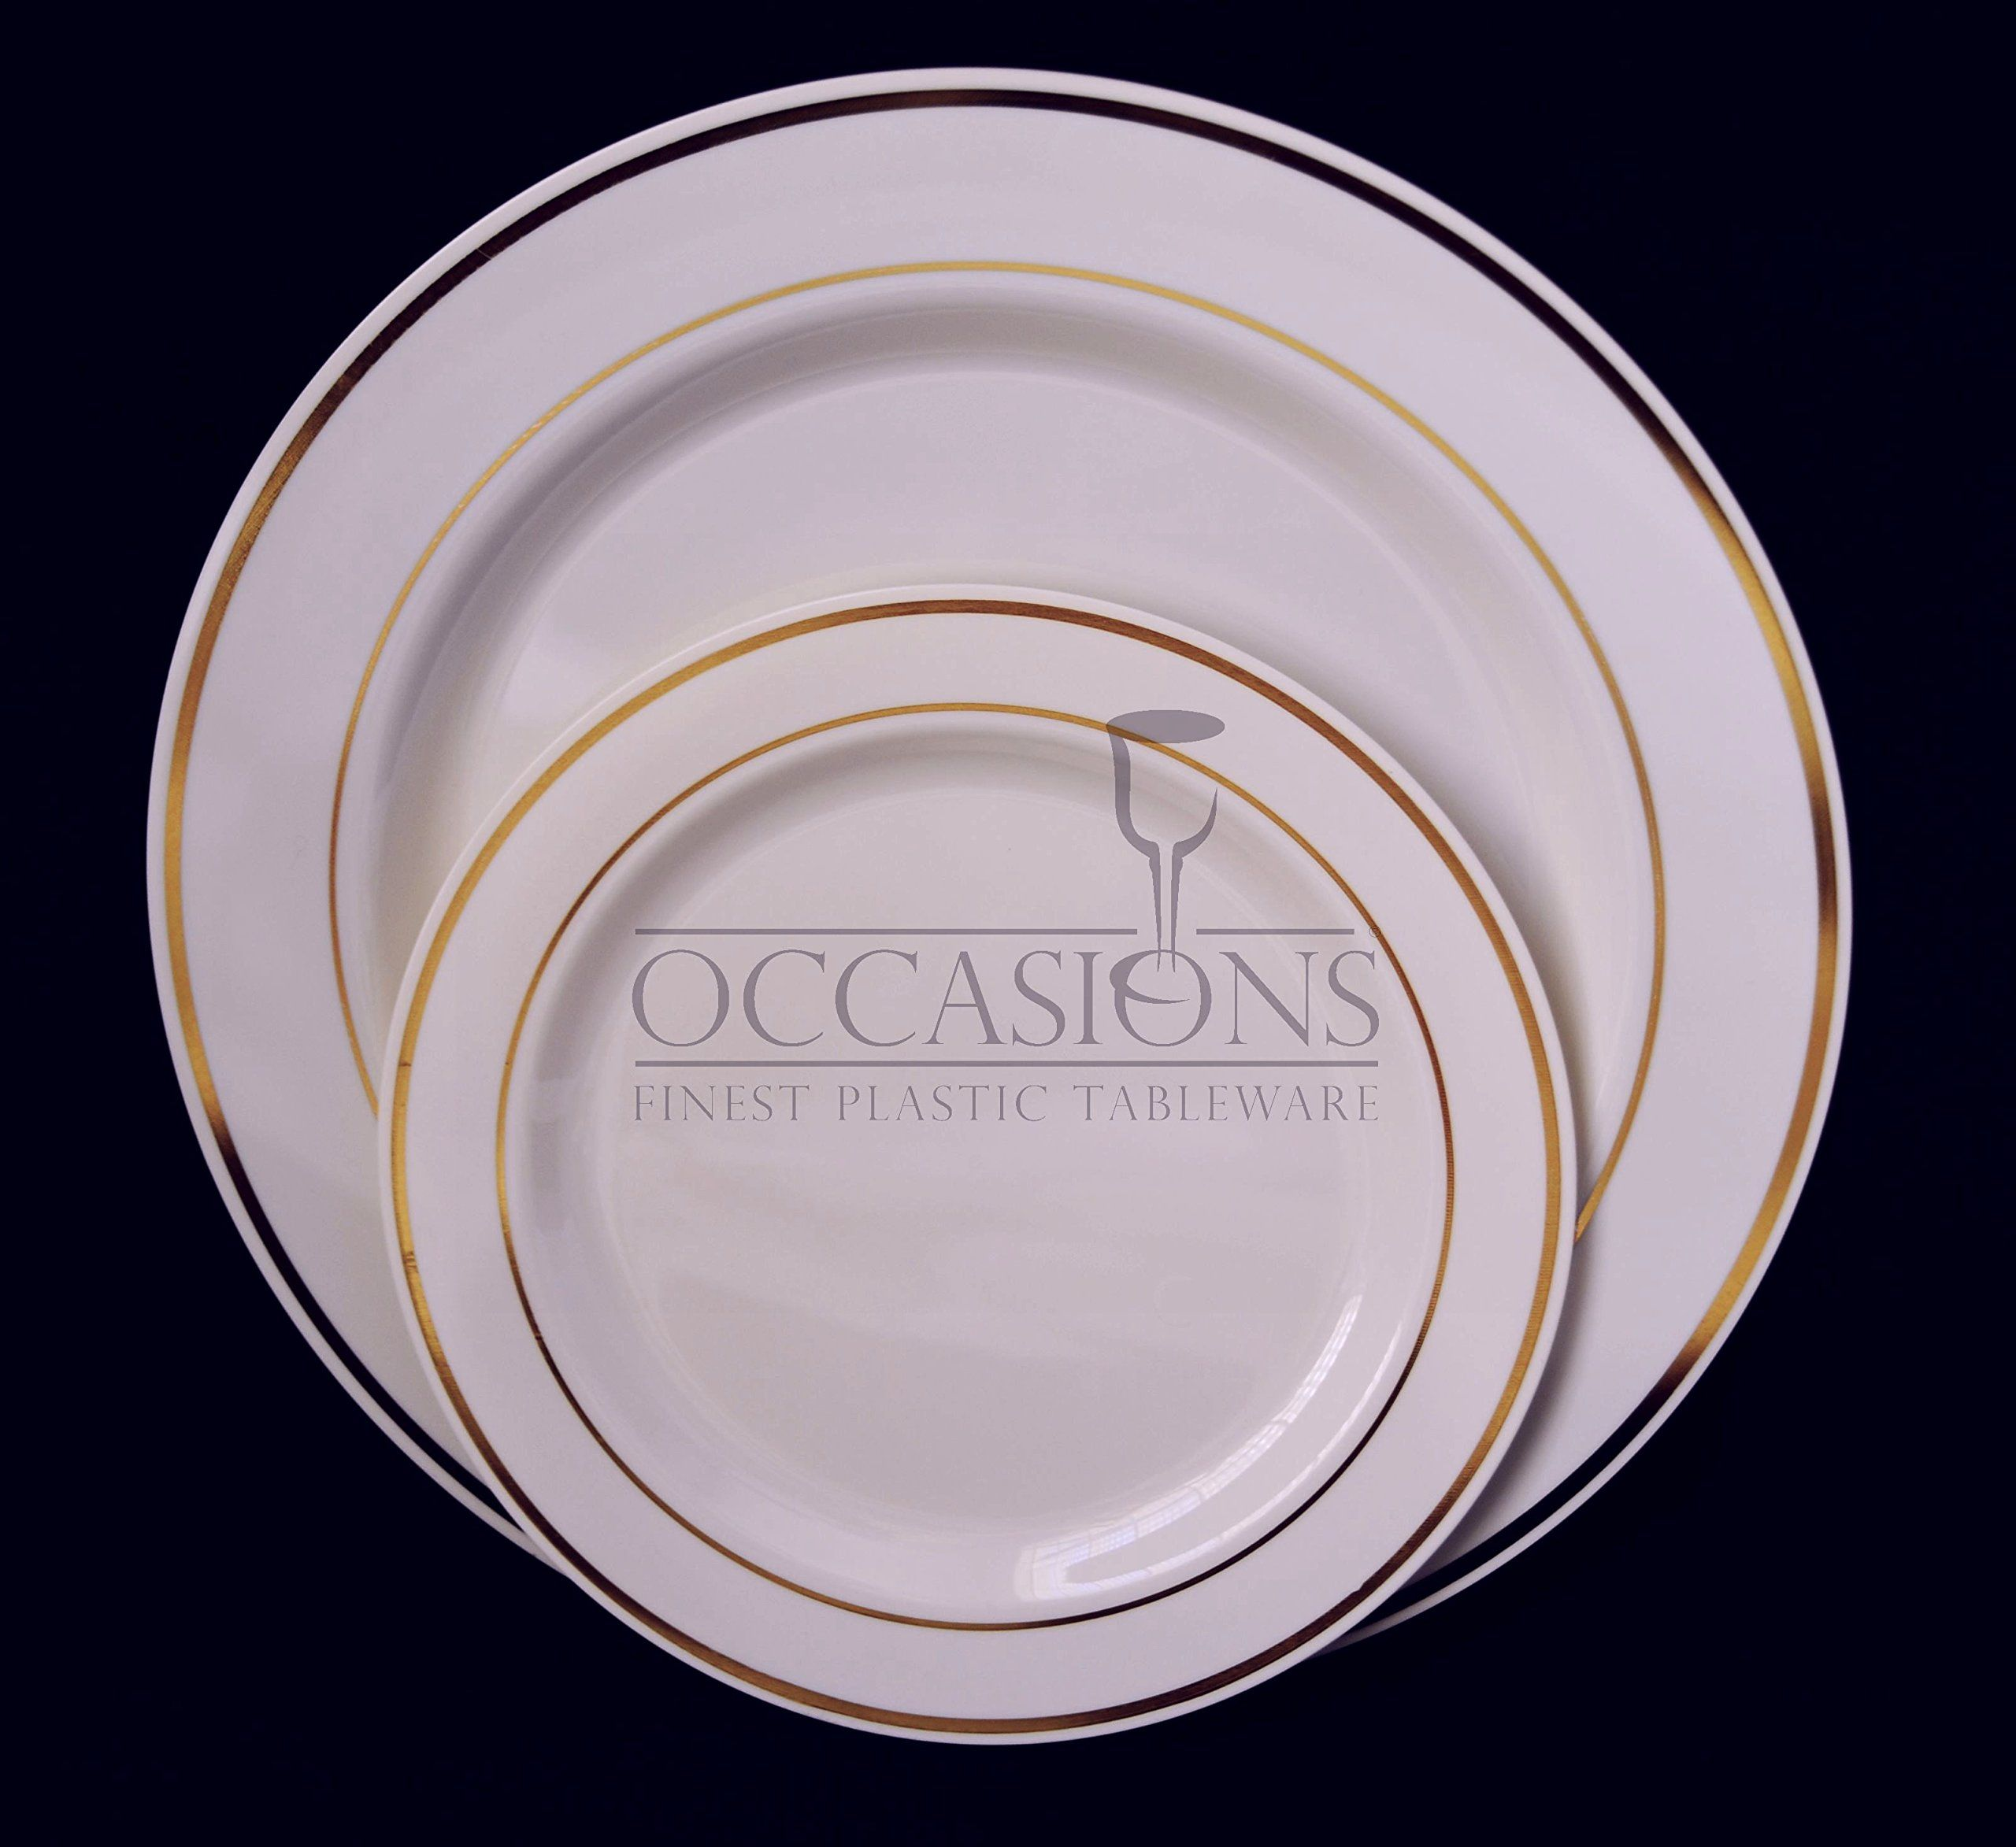 Amazon.com Bulk Disposable Plastic Plates - Masterpiece Style- Bone with Gold rim. Choose qttys and size inside! (10 10.5u0027u0027 dinner plate) Kitchen u0026 ...  sc 1 st  Pinterest & Amazon.com: Bulk Disposable Plastic Plates - Masterpiece Style ...